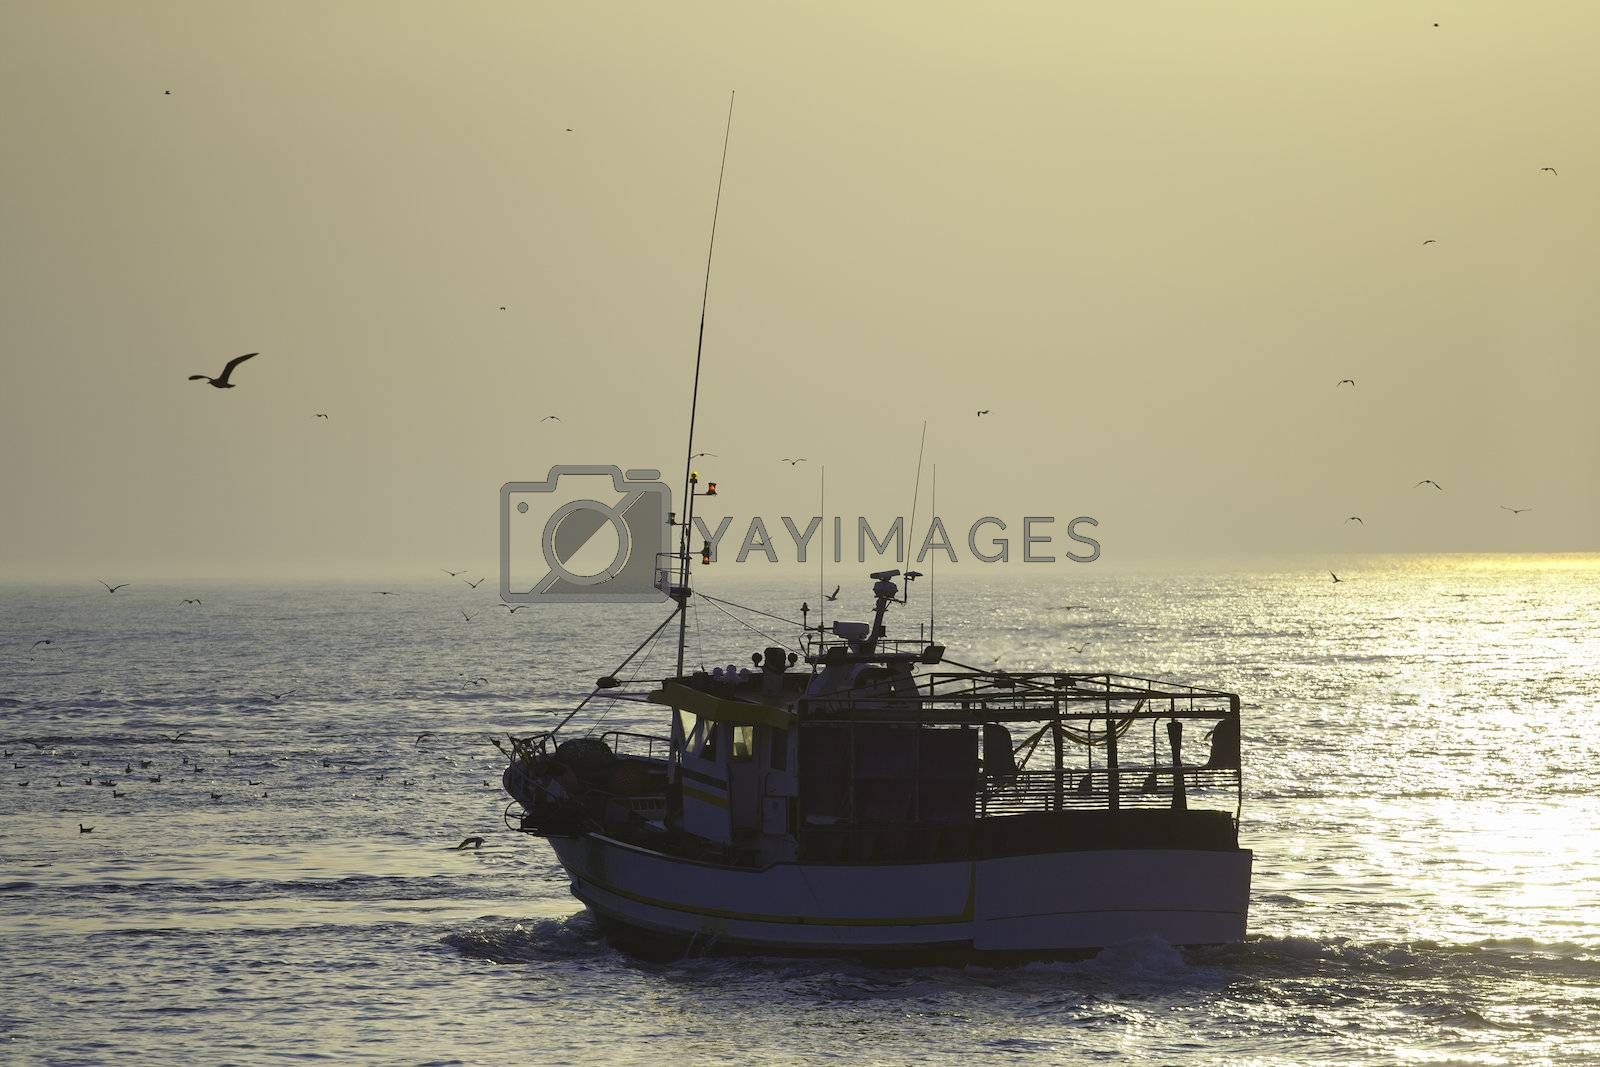 Fishing boat on the sunset departerd for a new day